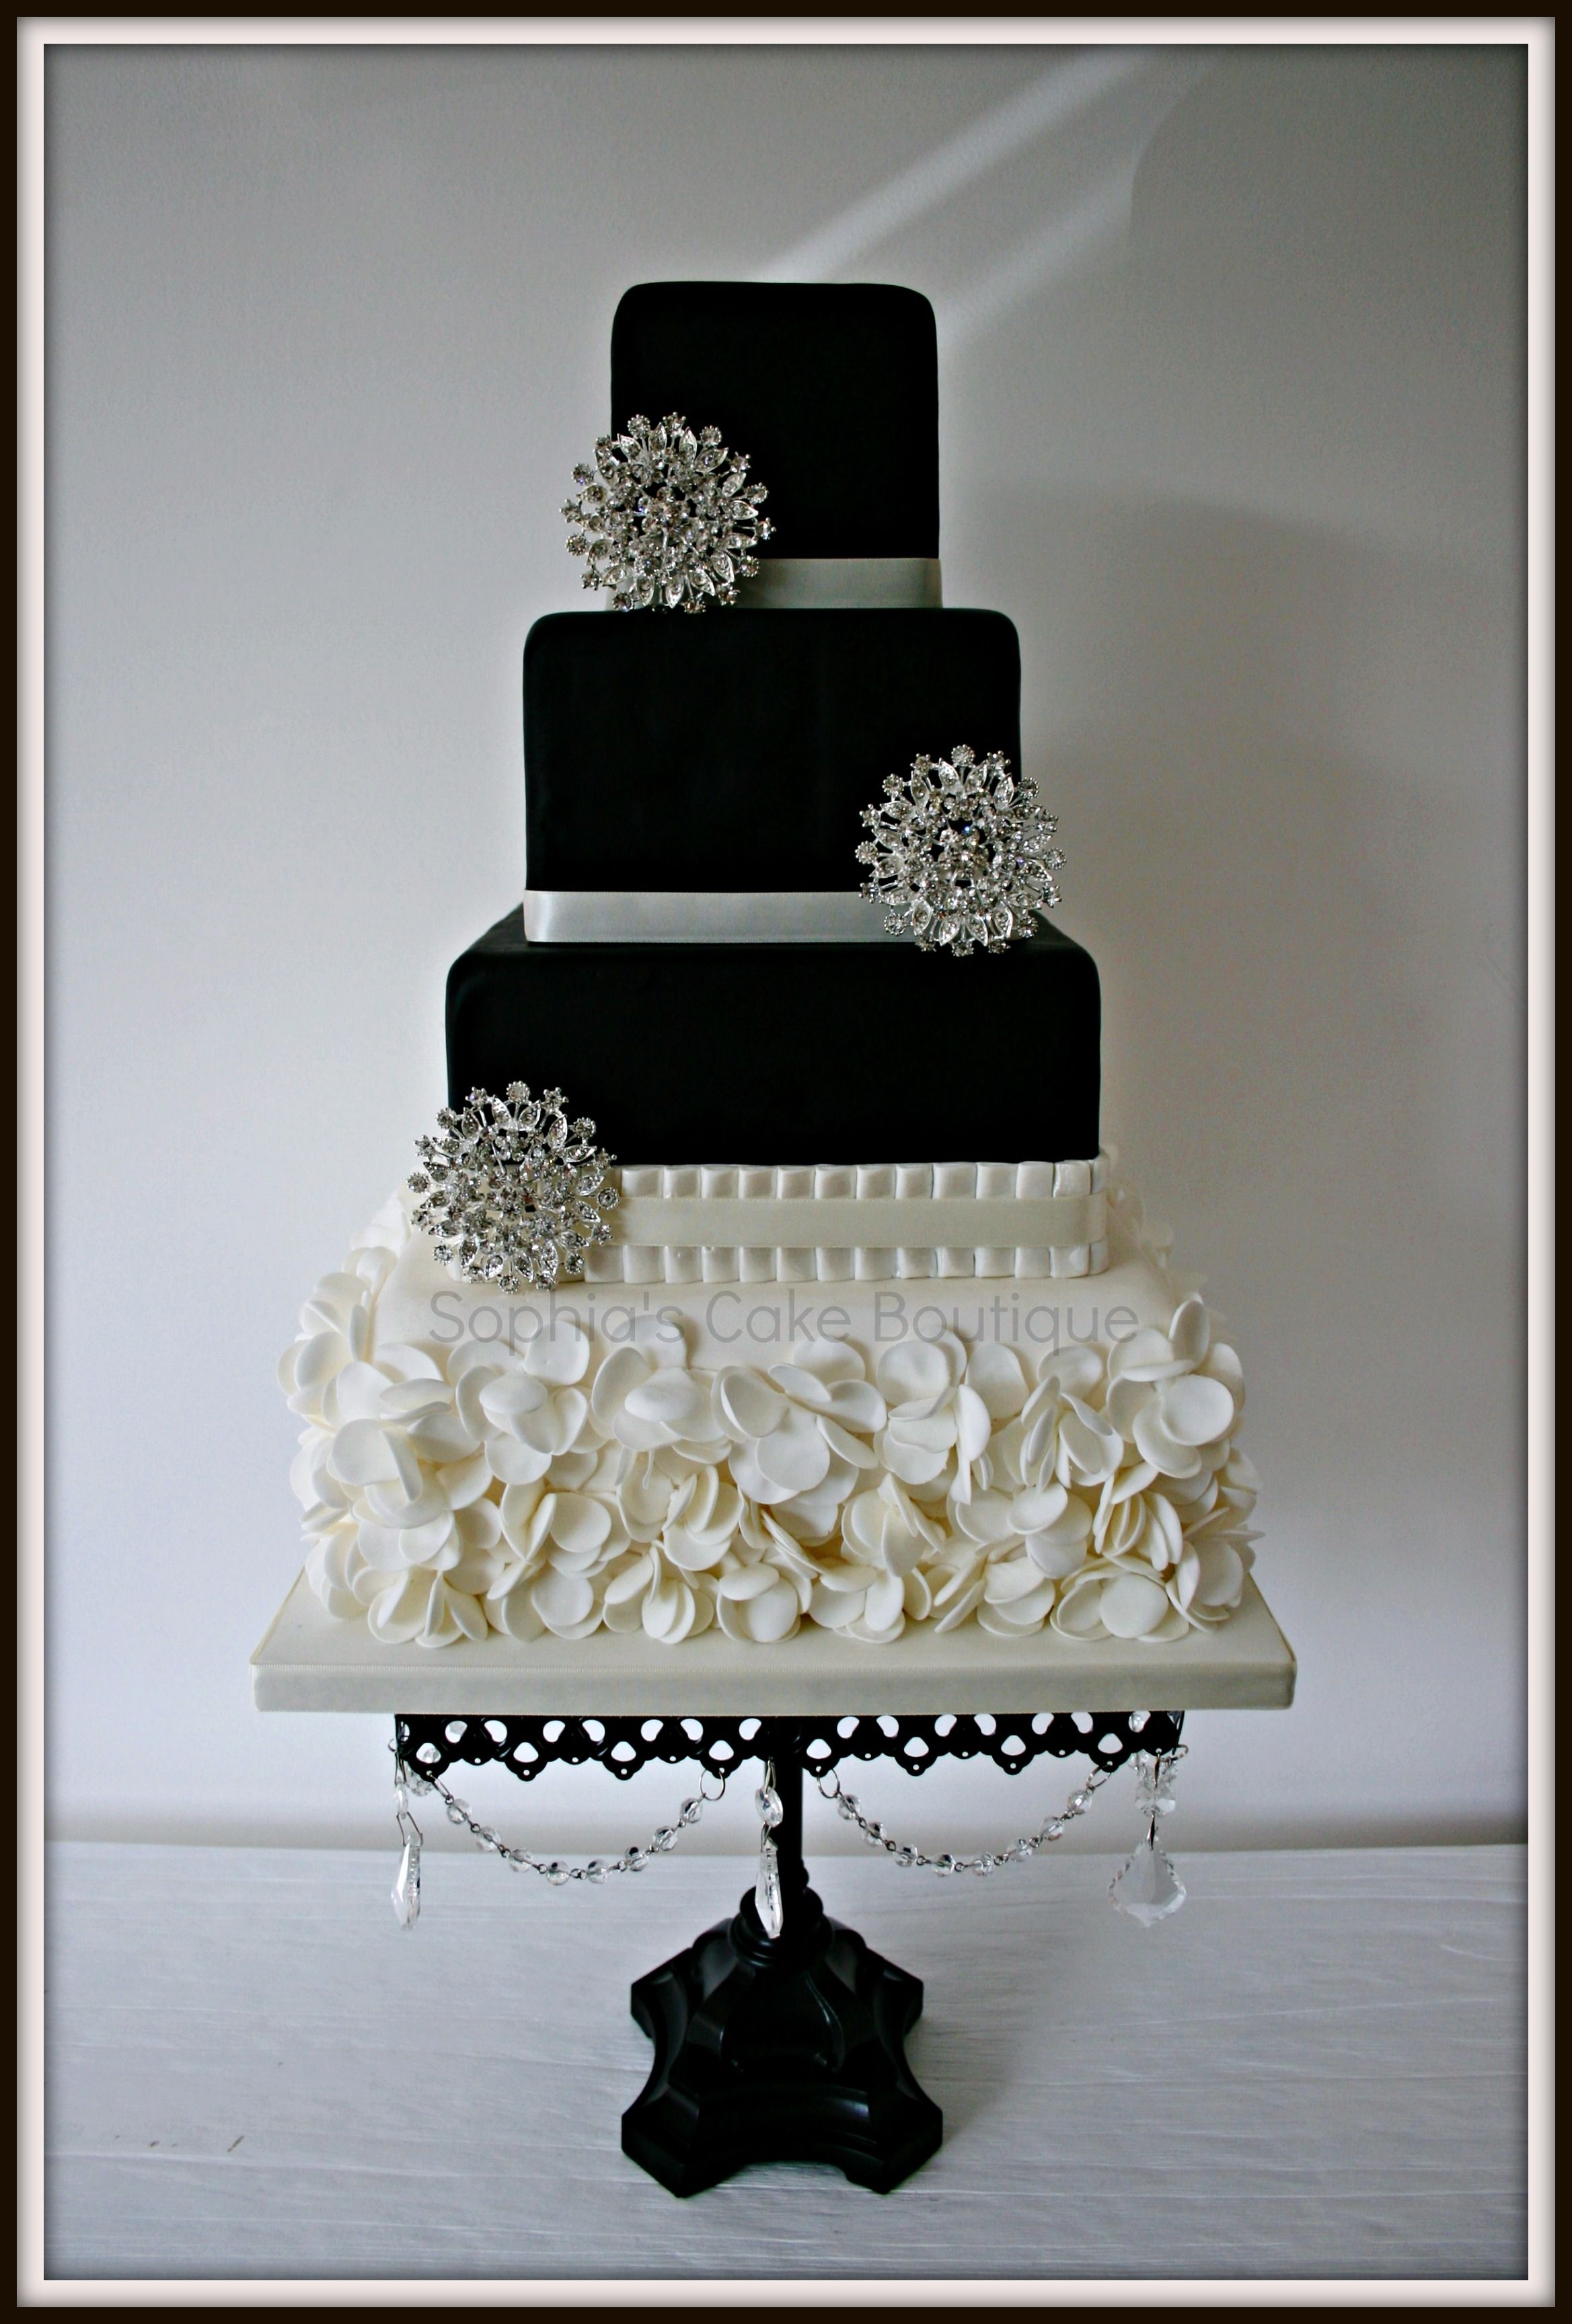 This design is heavily based on a gorgeous cake by heavenly angel